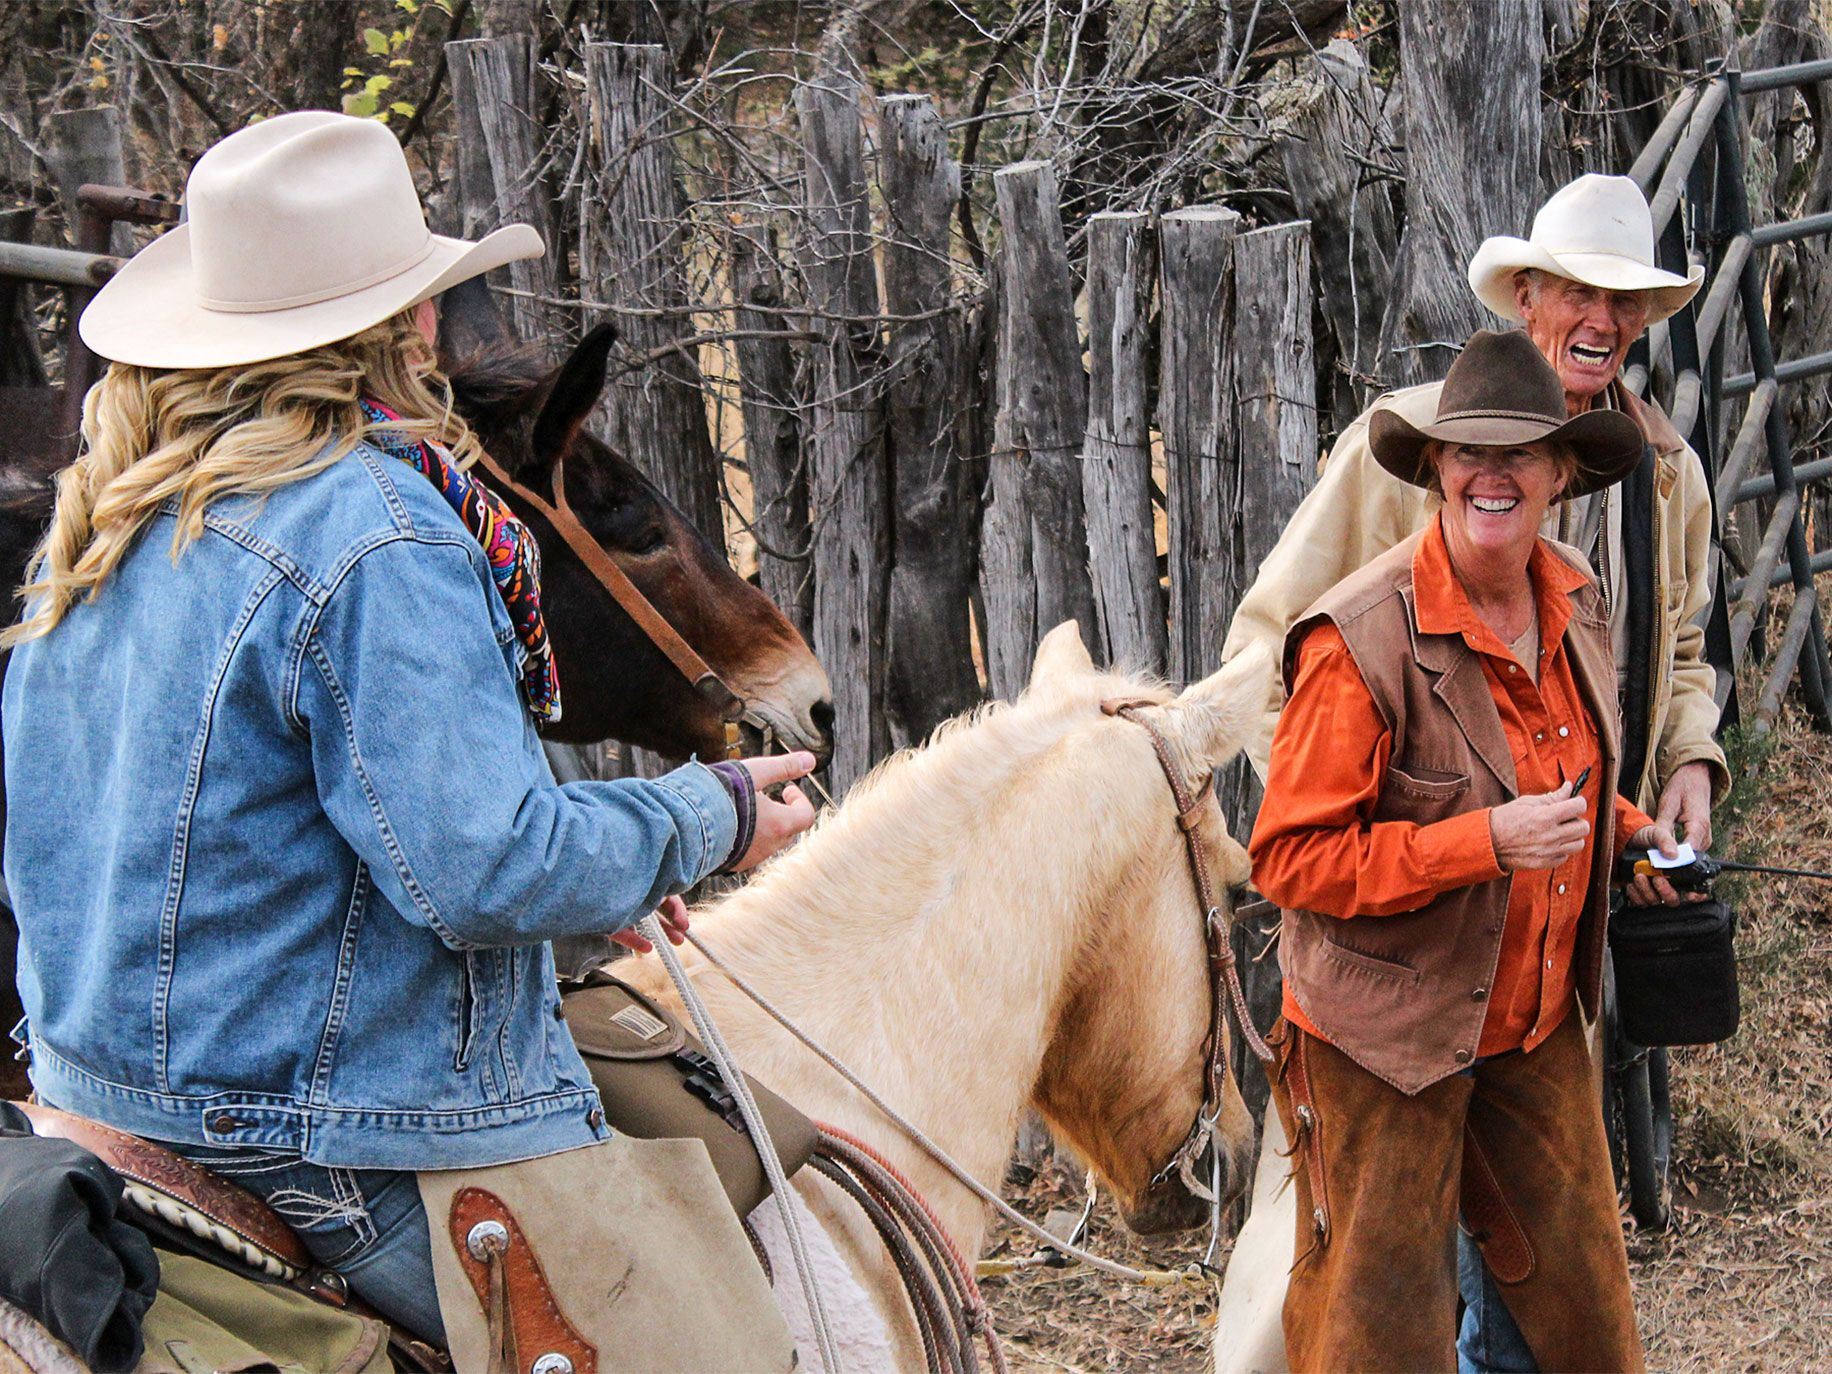 Kelly Kimbro (center) laughs with her daughter, Mackenzie (on horseback), and her father, Warner Glenn. Kimbro owns and leases land that abuts about 150 acres of the Roosevelt Reservation in Arizona, where there is border fencing.